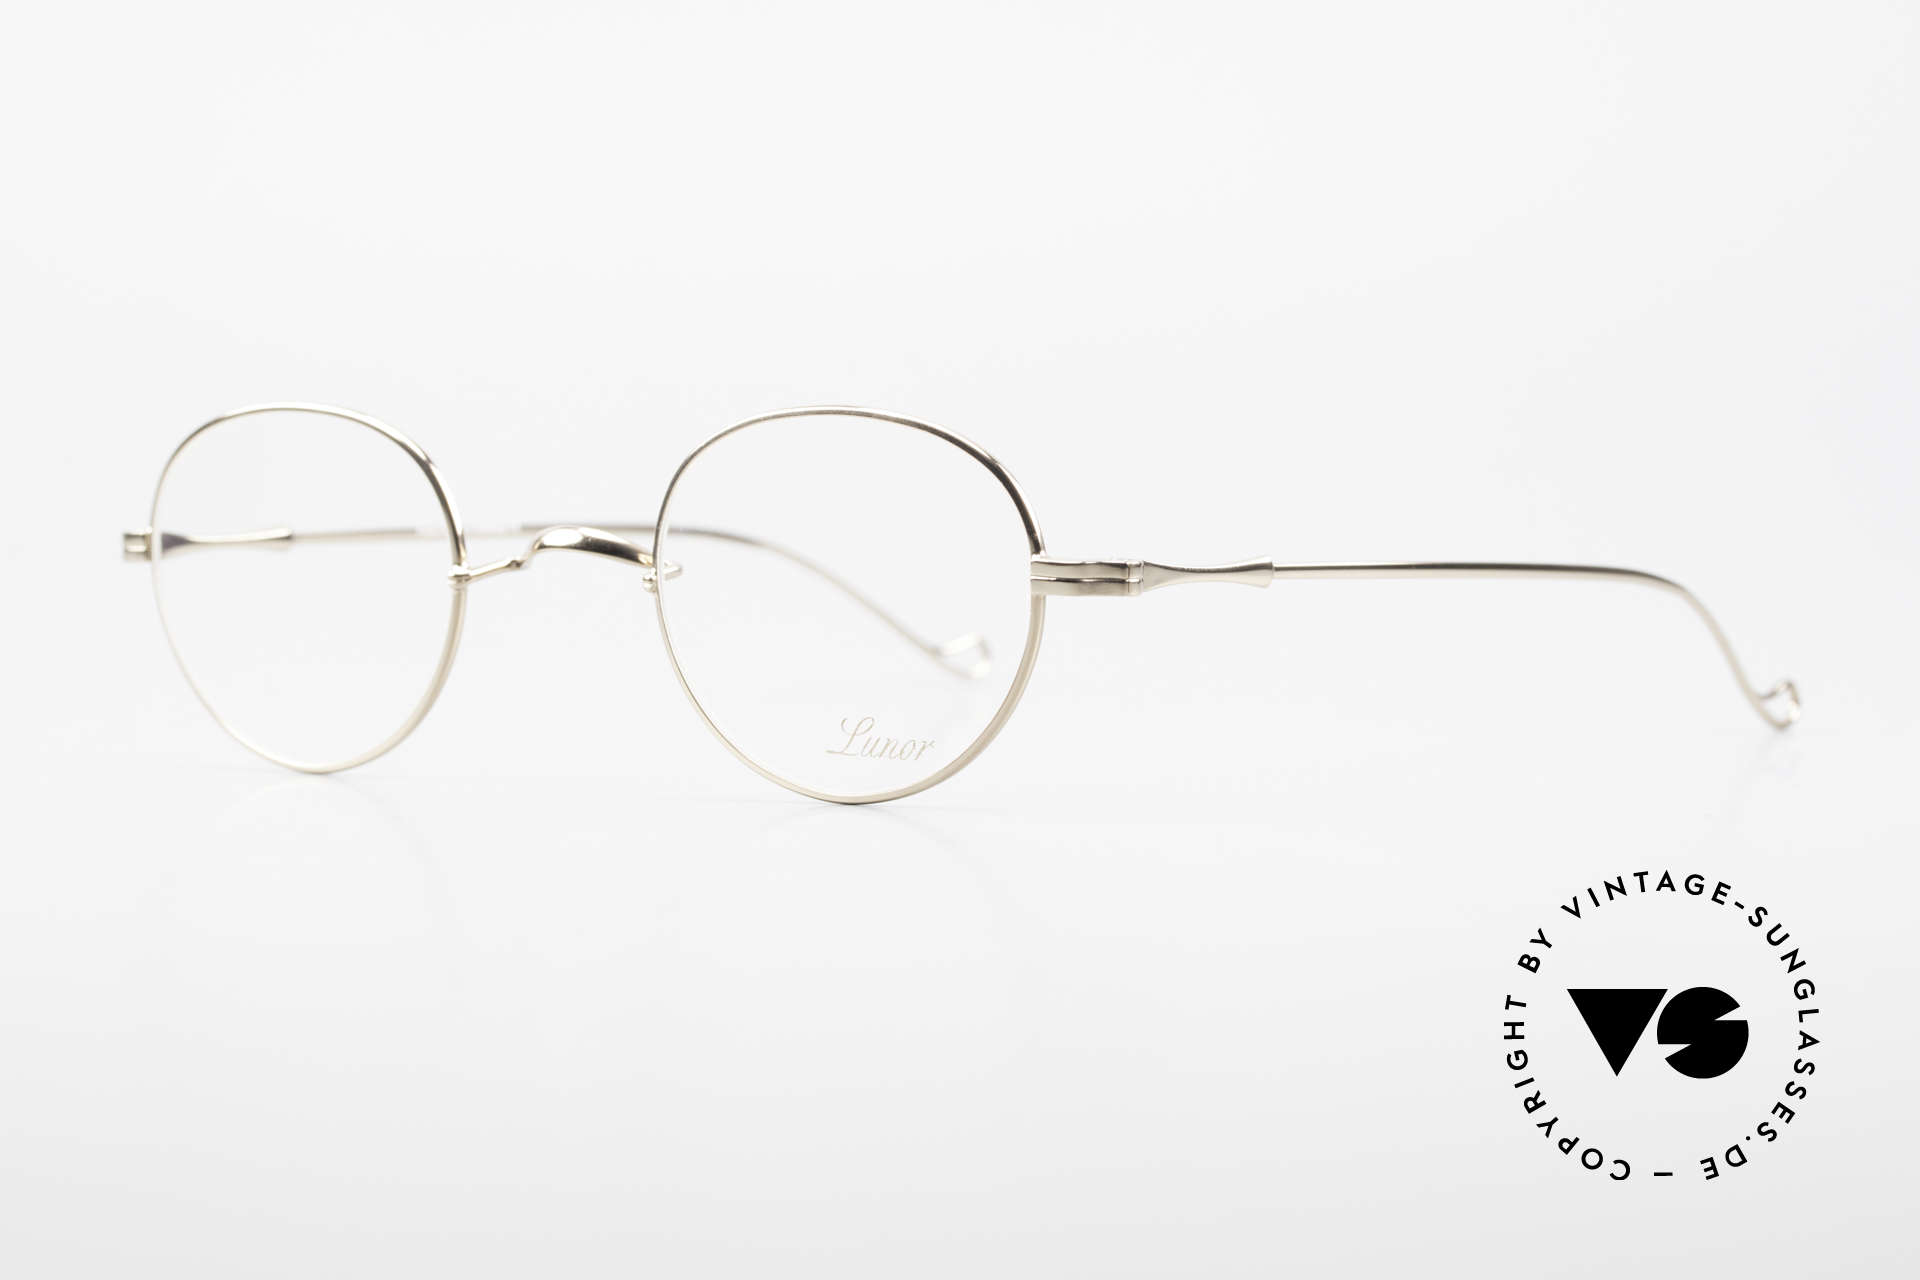 Lunor II 22 Lunor Eyeglasses Gold Plated, plain design with a W-shaped bridge, GOLD-PLATED, Made for Men and Women